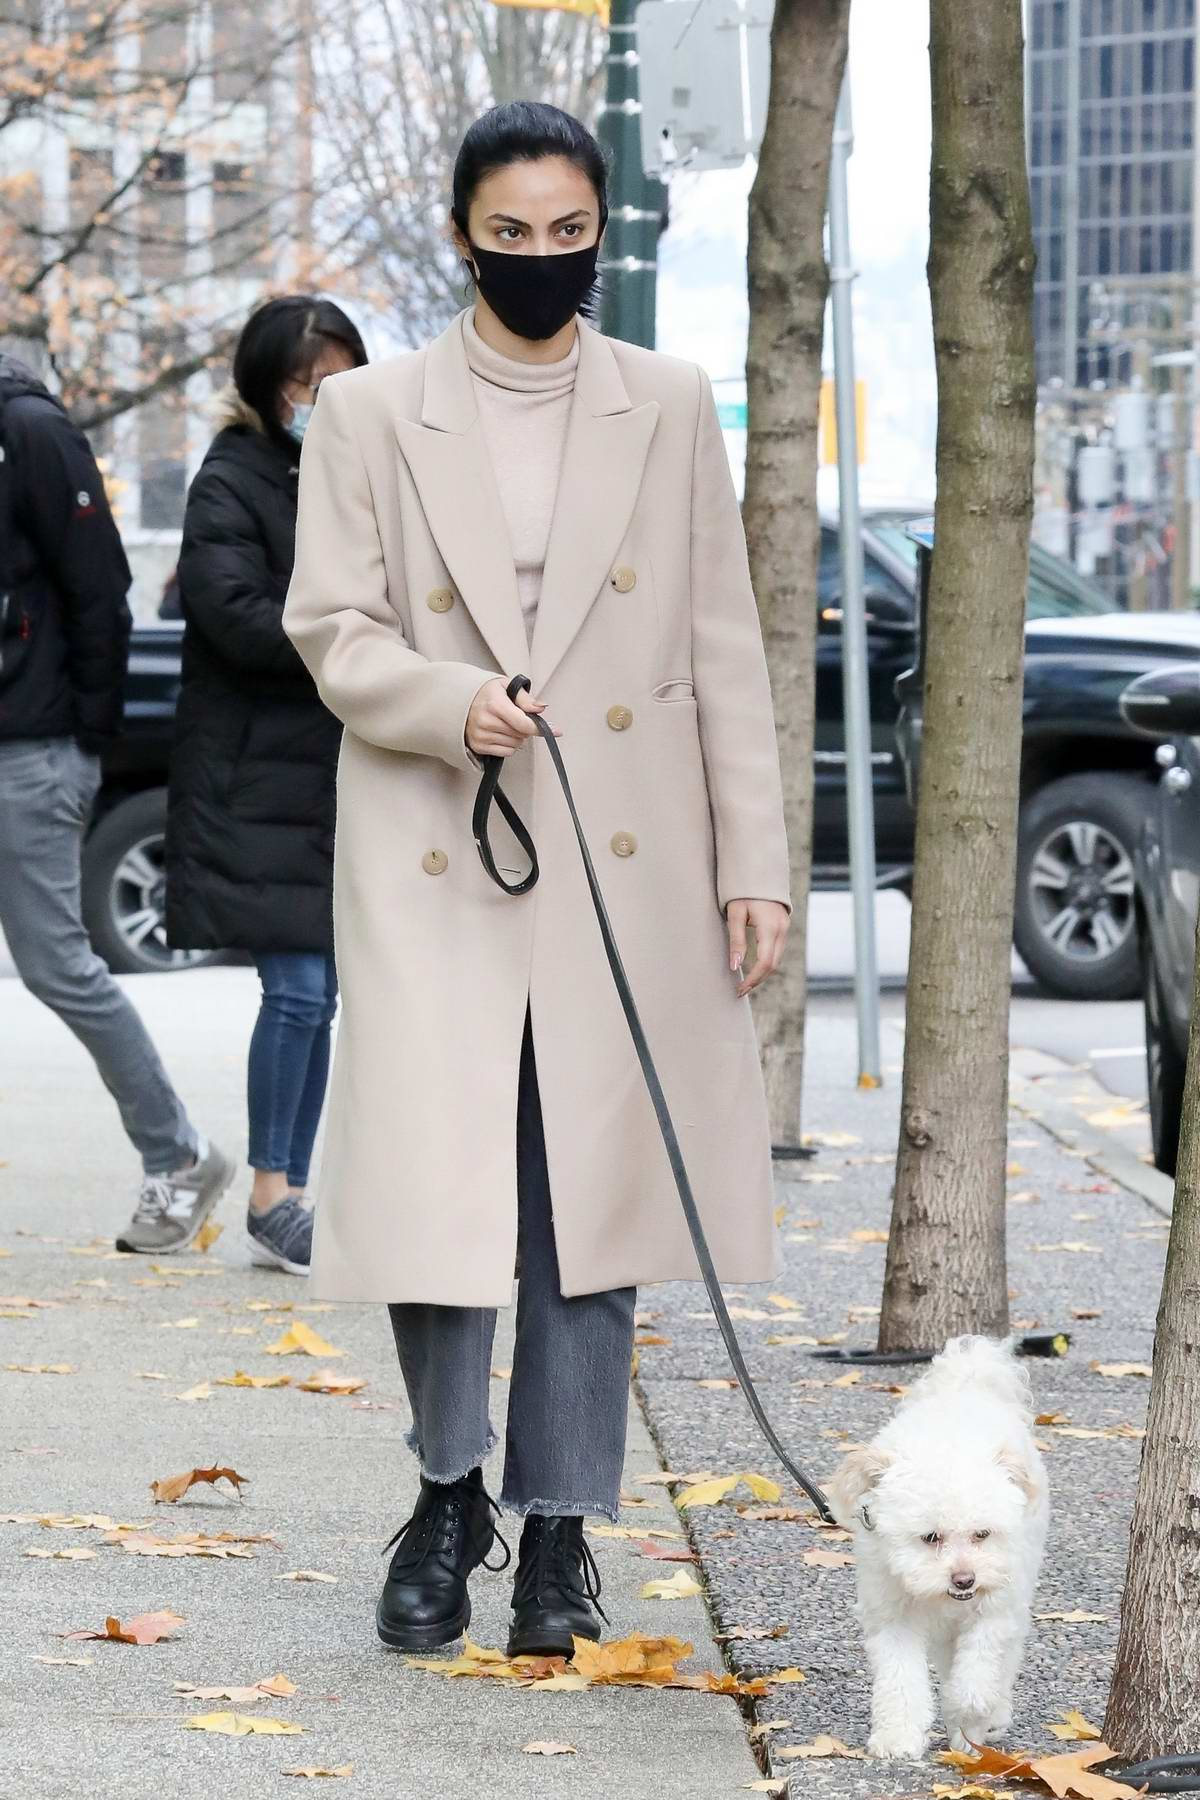 Camila Mendes wears a warm stylish coat to take her dog for a walk in Vancouver, Canada